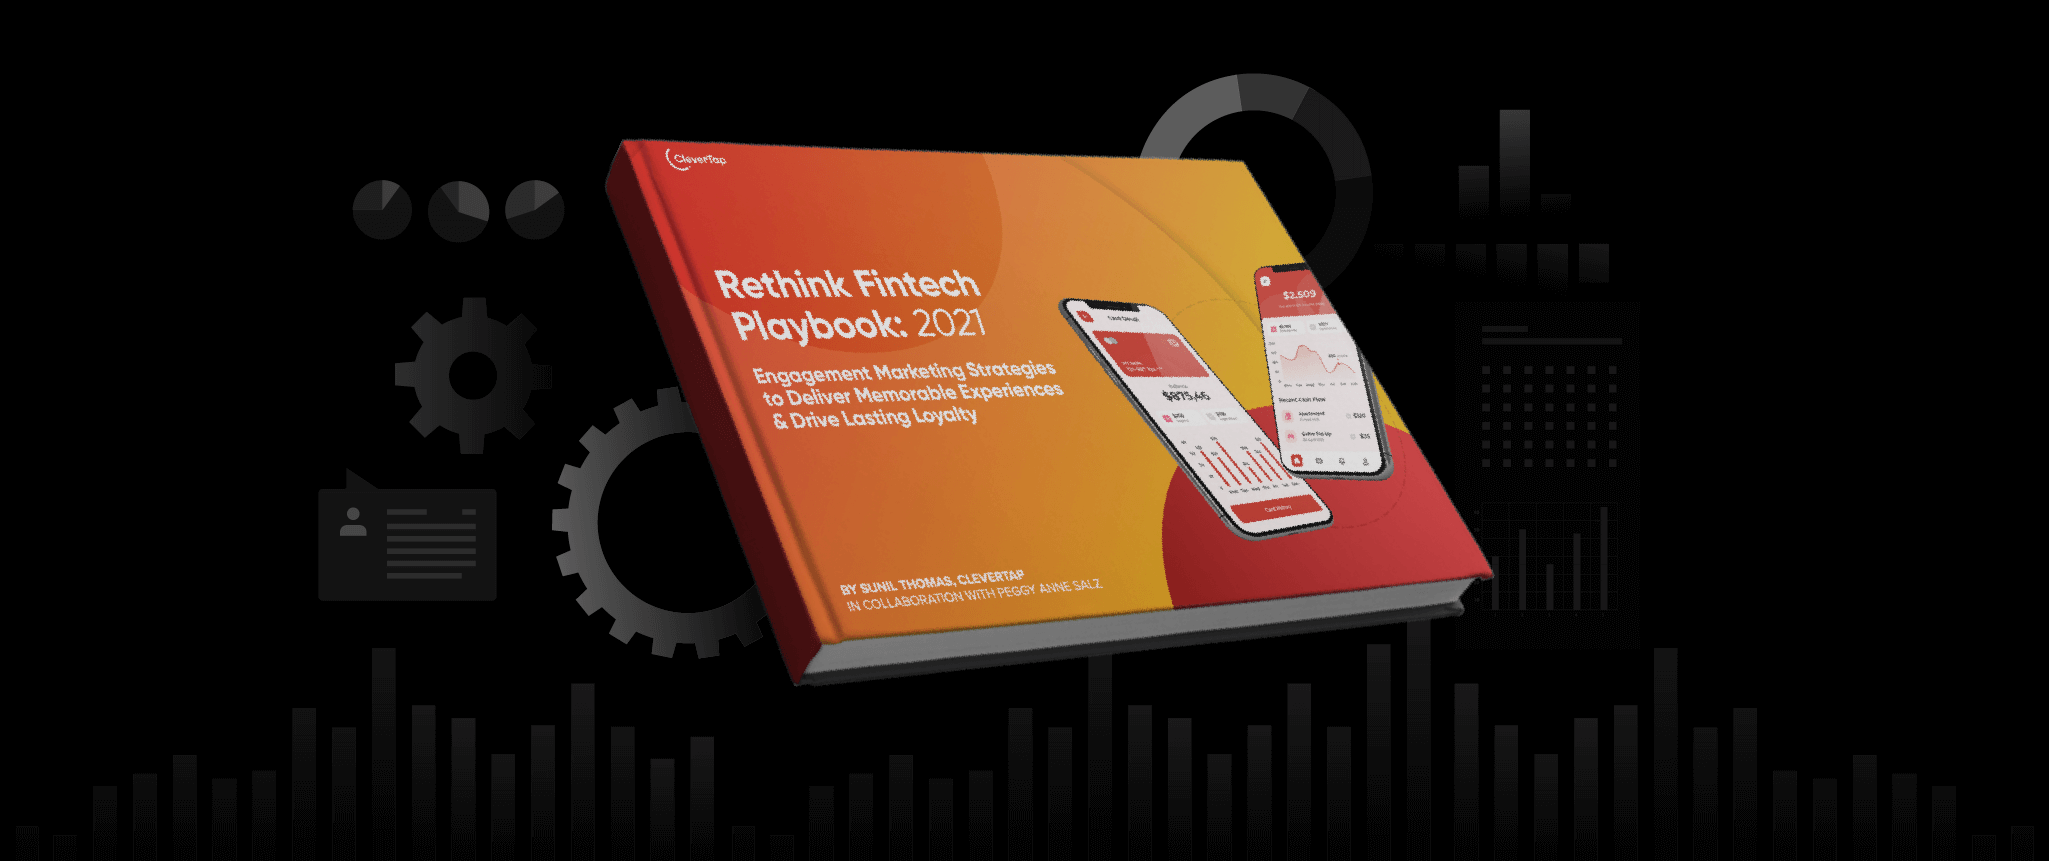 Why Brands Need to Rethink Fintech Marketing: Pivot and Personalize to Deliver Netflix-Style Banking